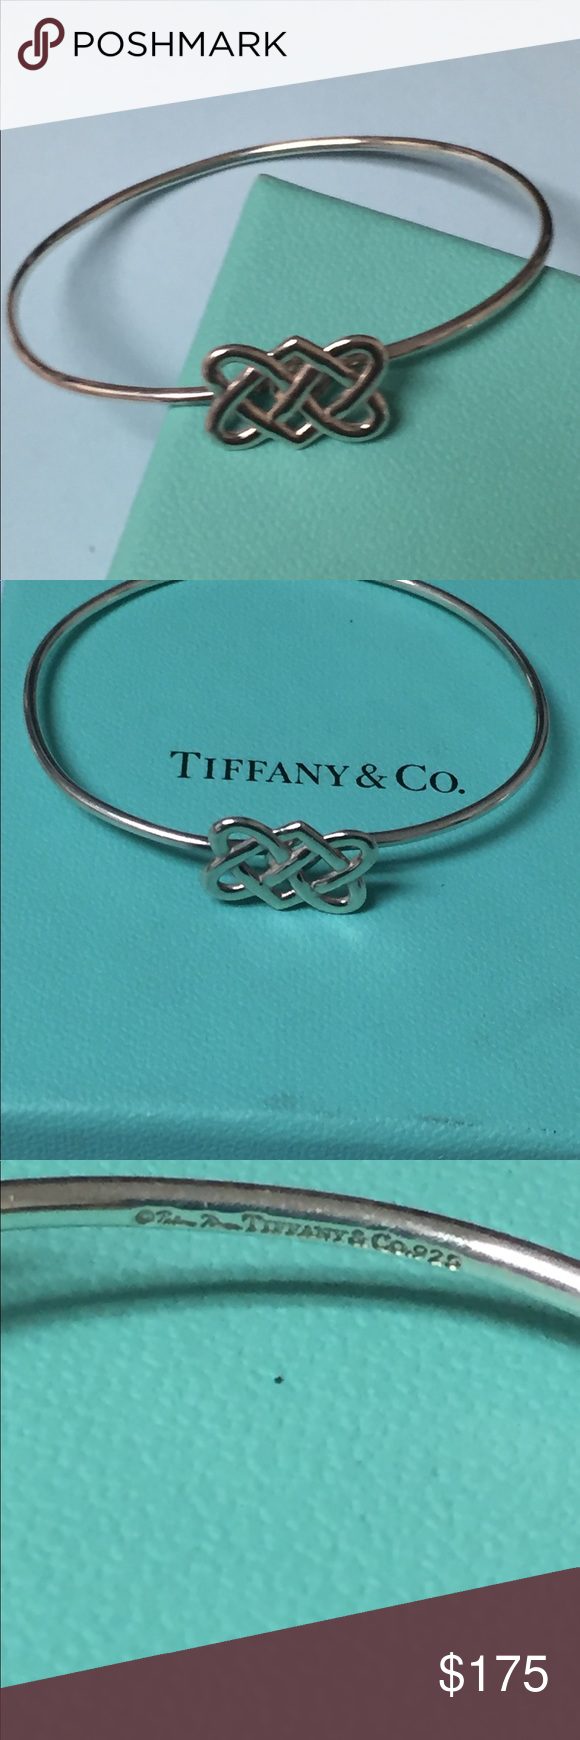 2f0e13da8 💎💎T&C Paloma Picasso Celtic Love Knot Bracelet💎 💎💎retired Sterling  Silver Paloma Picasso Celtic Love Knot bangle bracelet. 100% authentic.